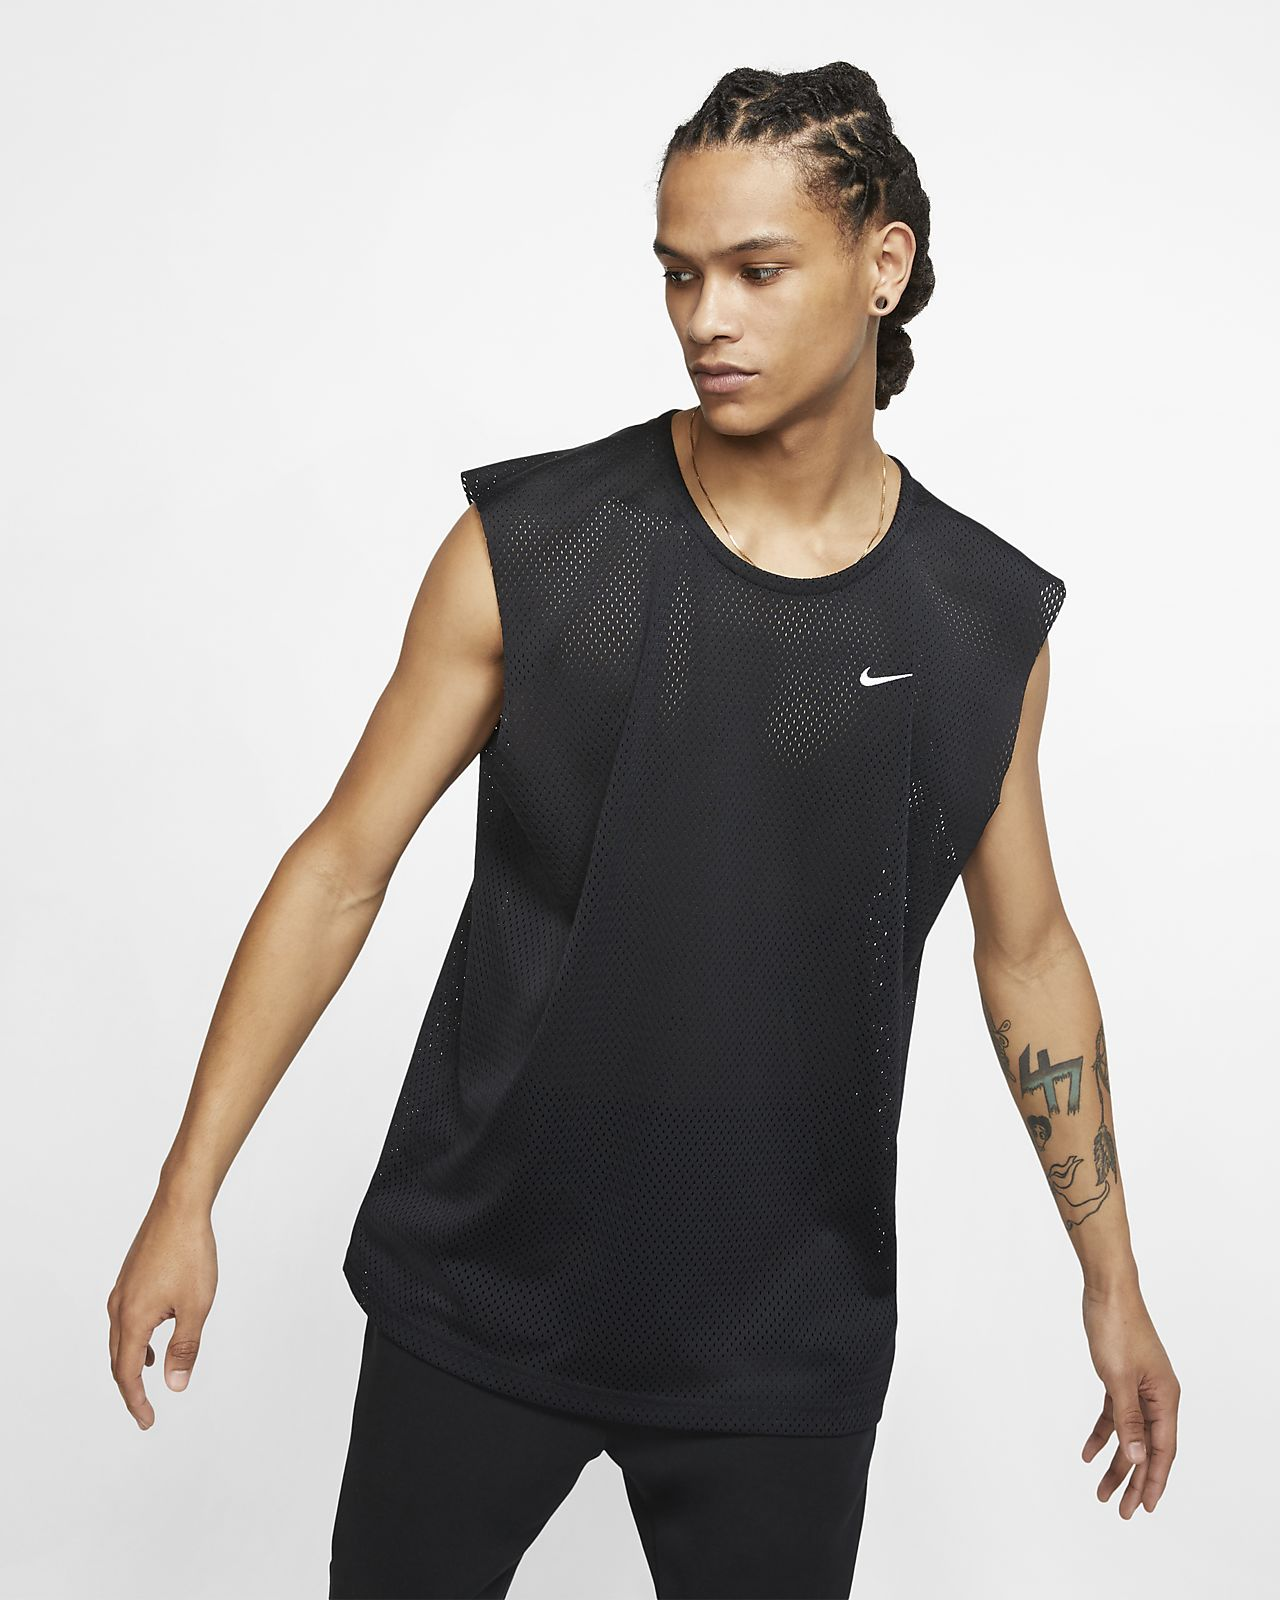 NikeLab Collection Men's Tank